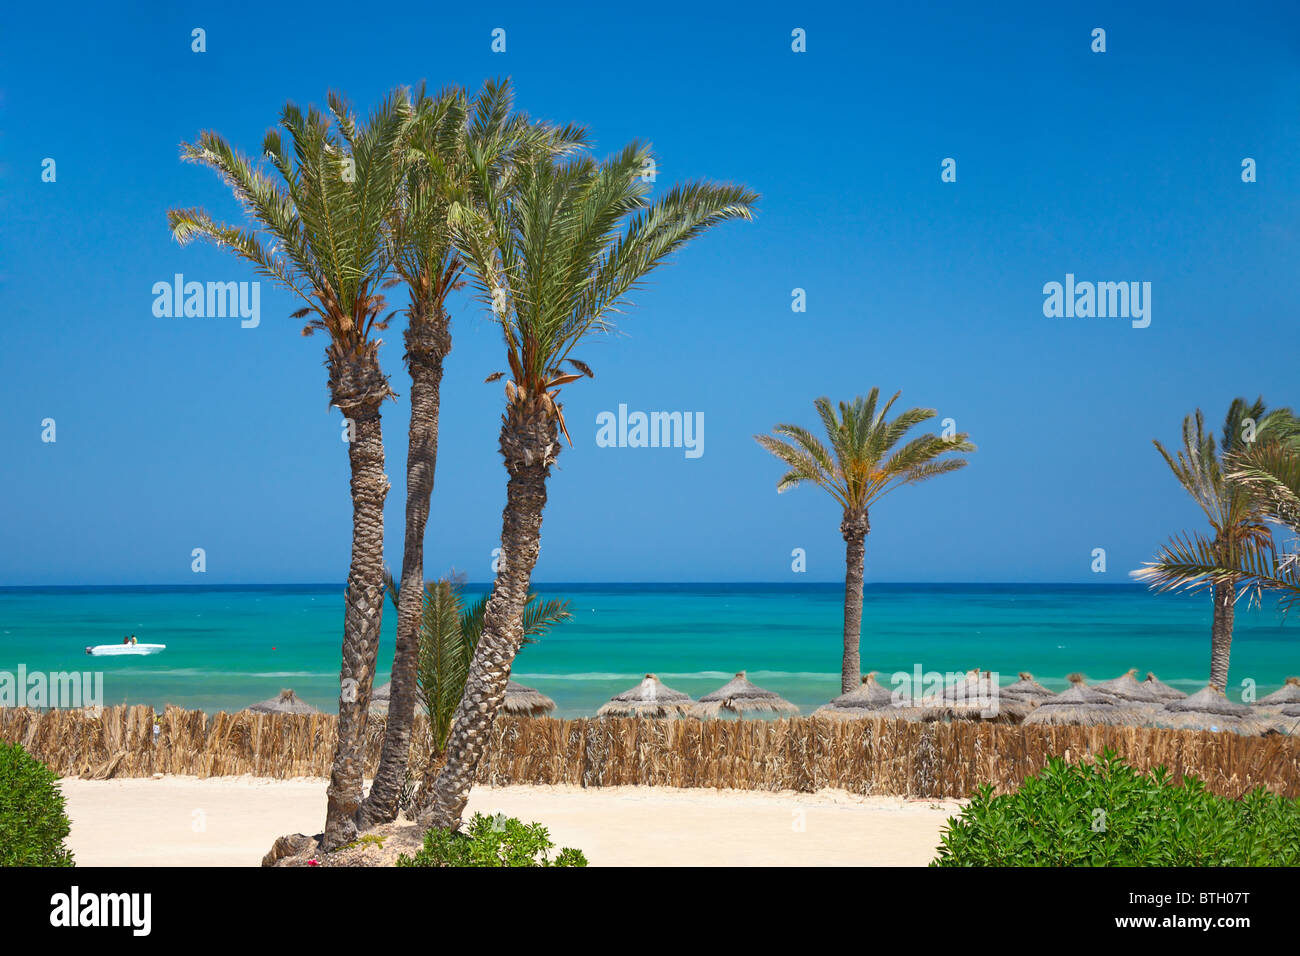 thatched sunshades and palm trees - Stock Image